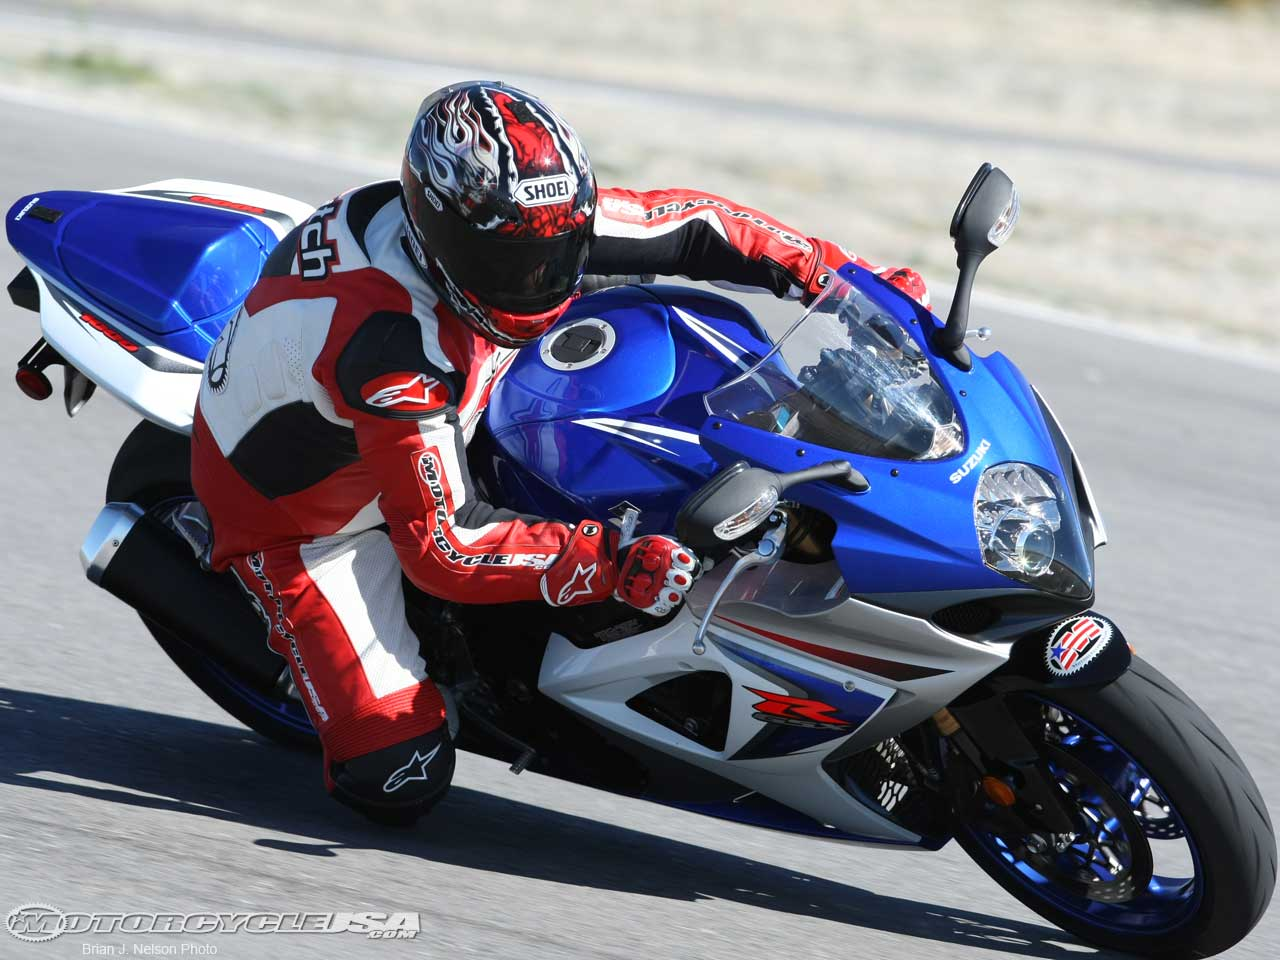 2008 Suzuki GSX-R1000 Comparison